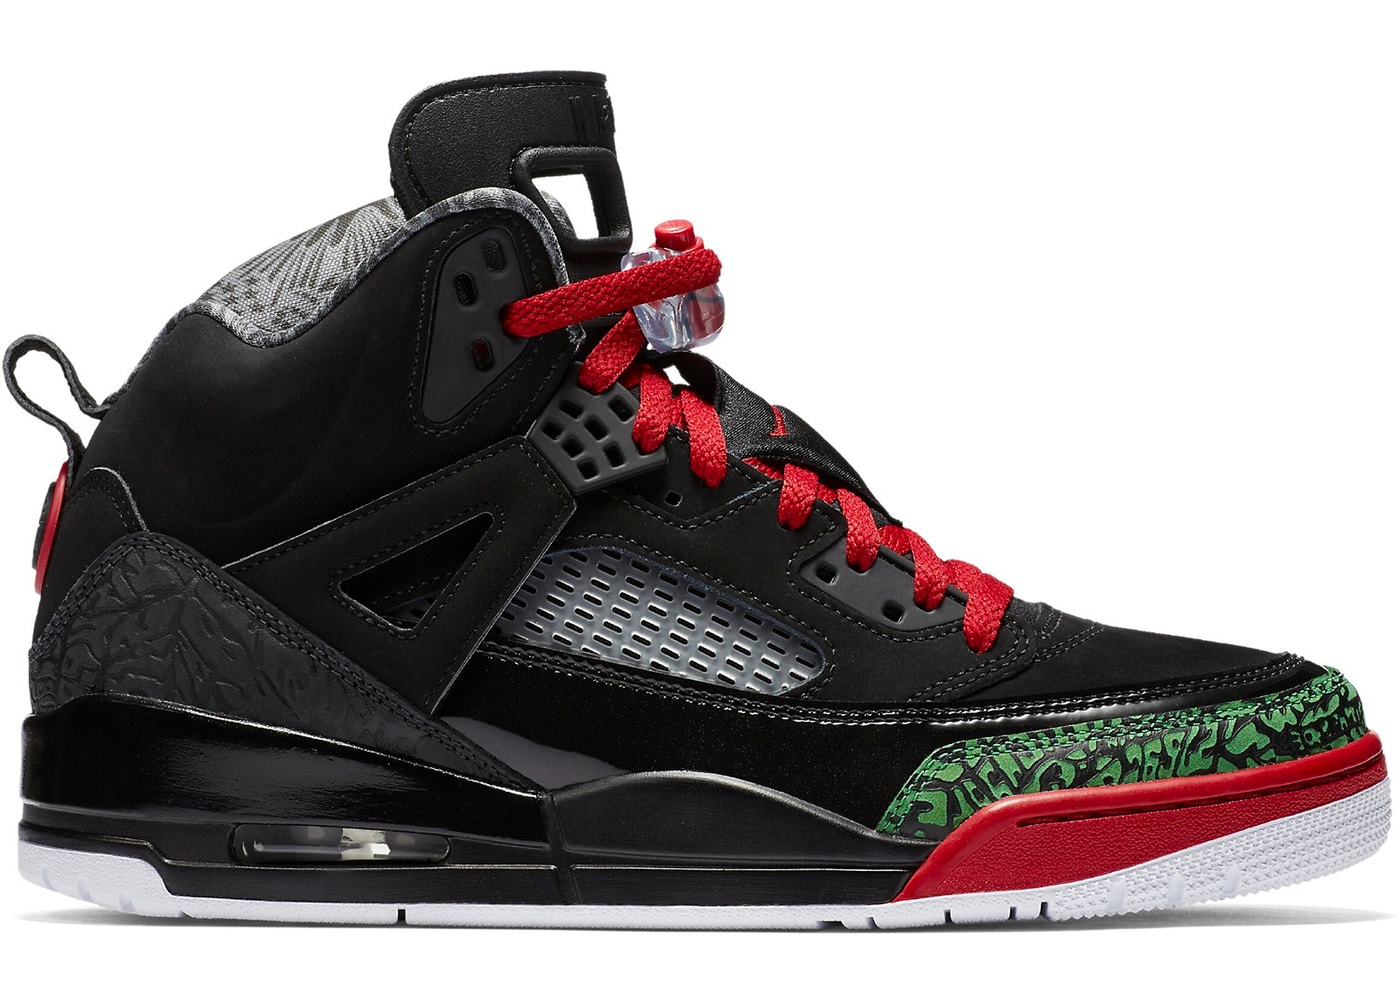 wholesale dealer 47d8d fe9e7 Jordan Spizike Black Varsity Red (2017) - 315371-026